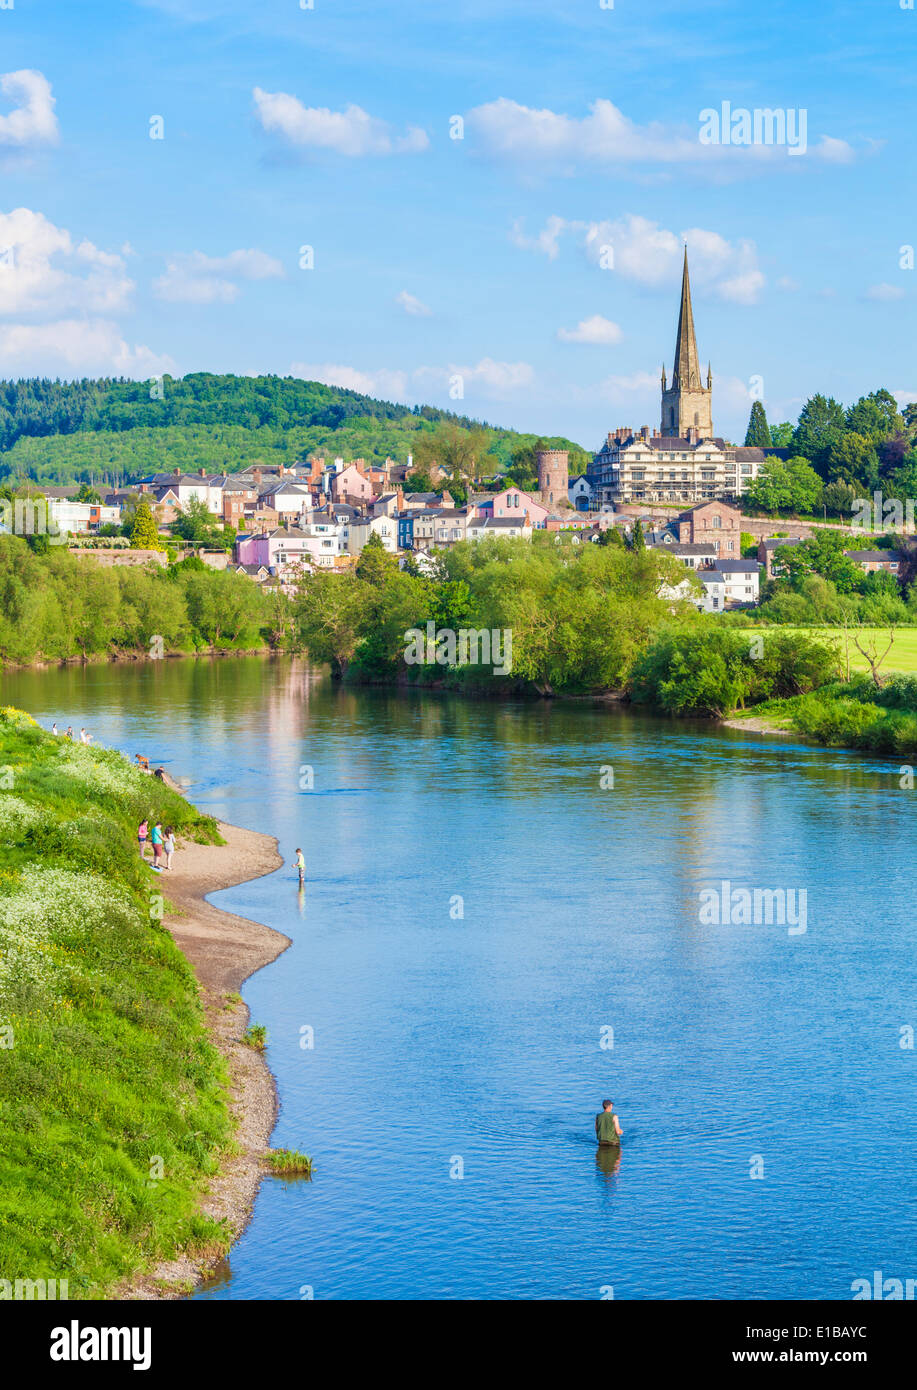 Fishing in river Wye, Ross on Wye, River Wye Valley, Herefordshire,  England, UK, EU, Europe - Stock Image